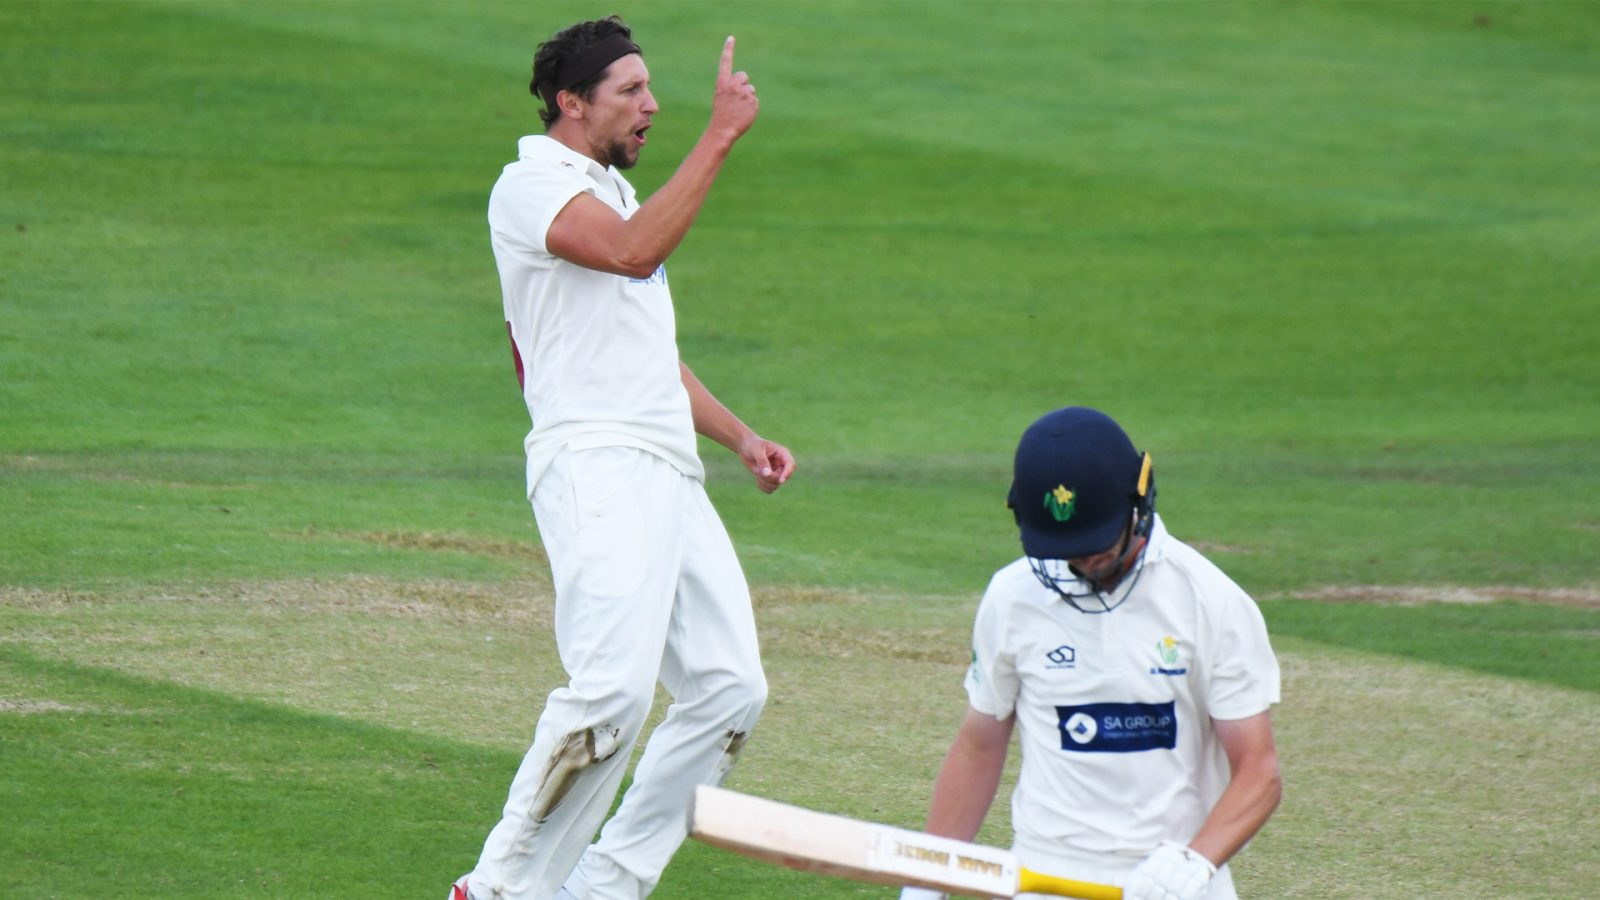 White And Hutton Share Wickets On Day 1